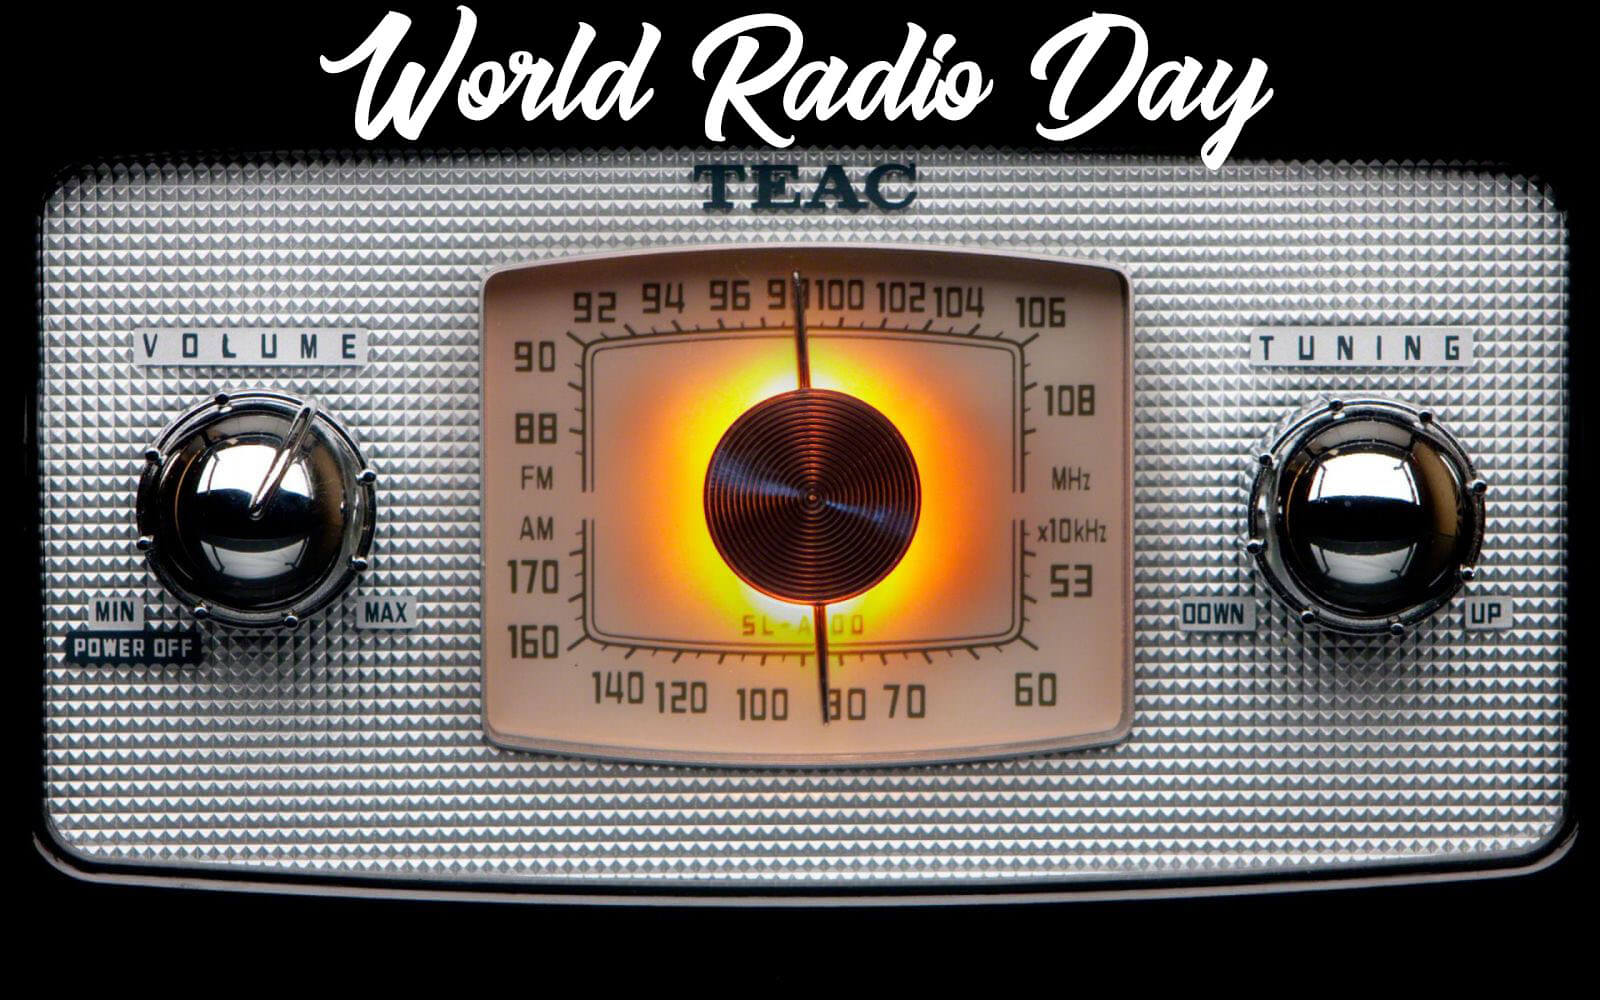 world radio day latest desktop background pc hd wallpaper